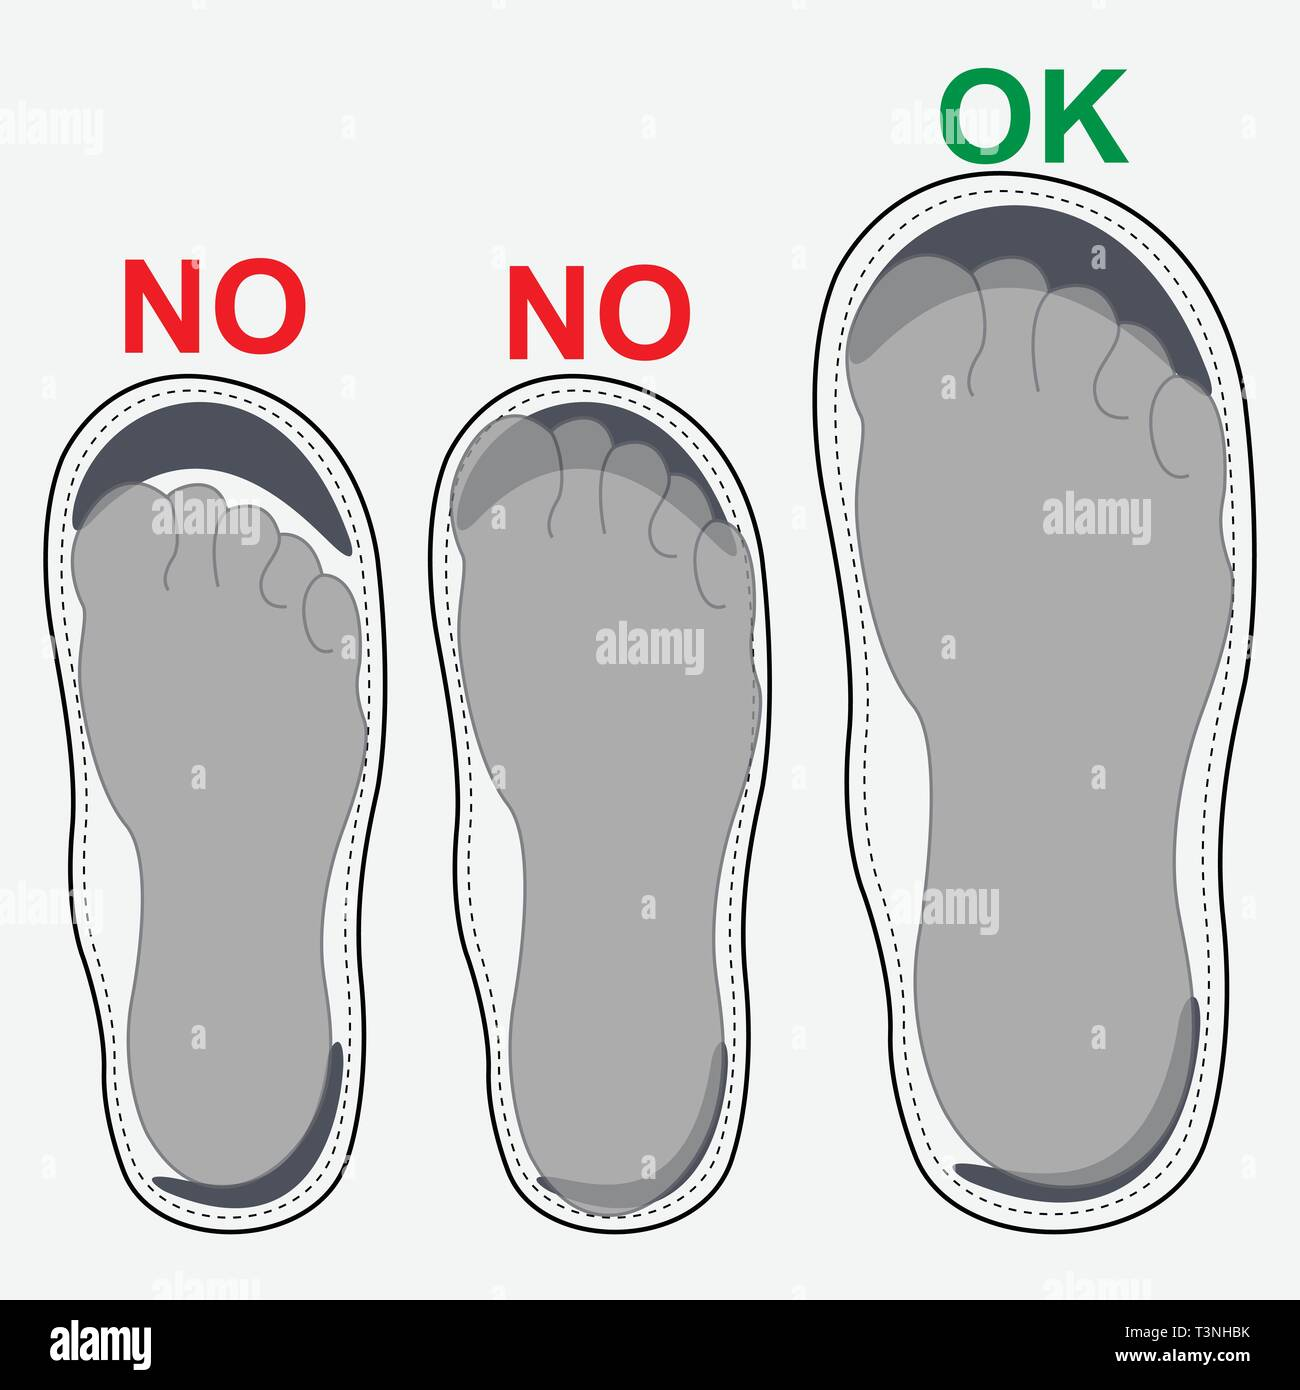 Bare foot on shoe sole with text - Stock Vector